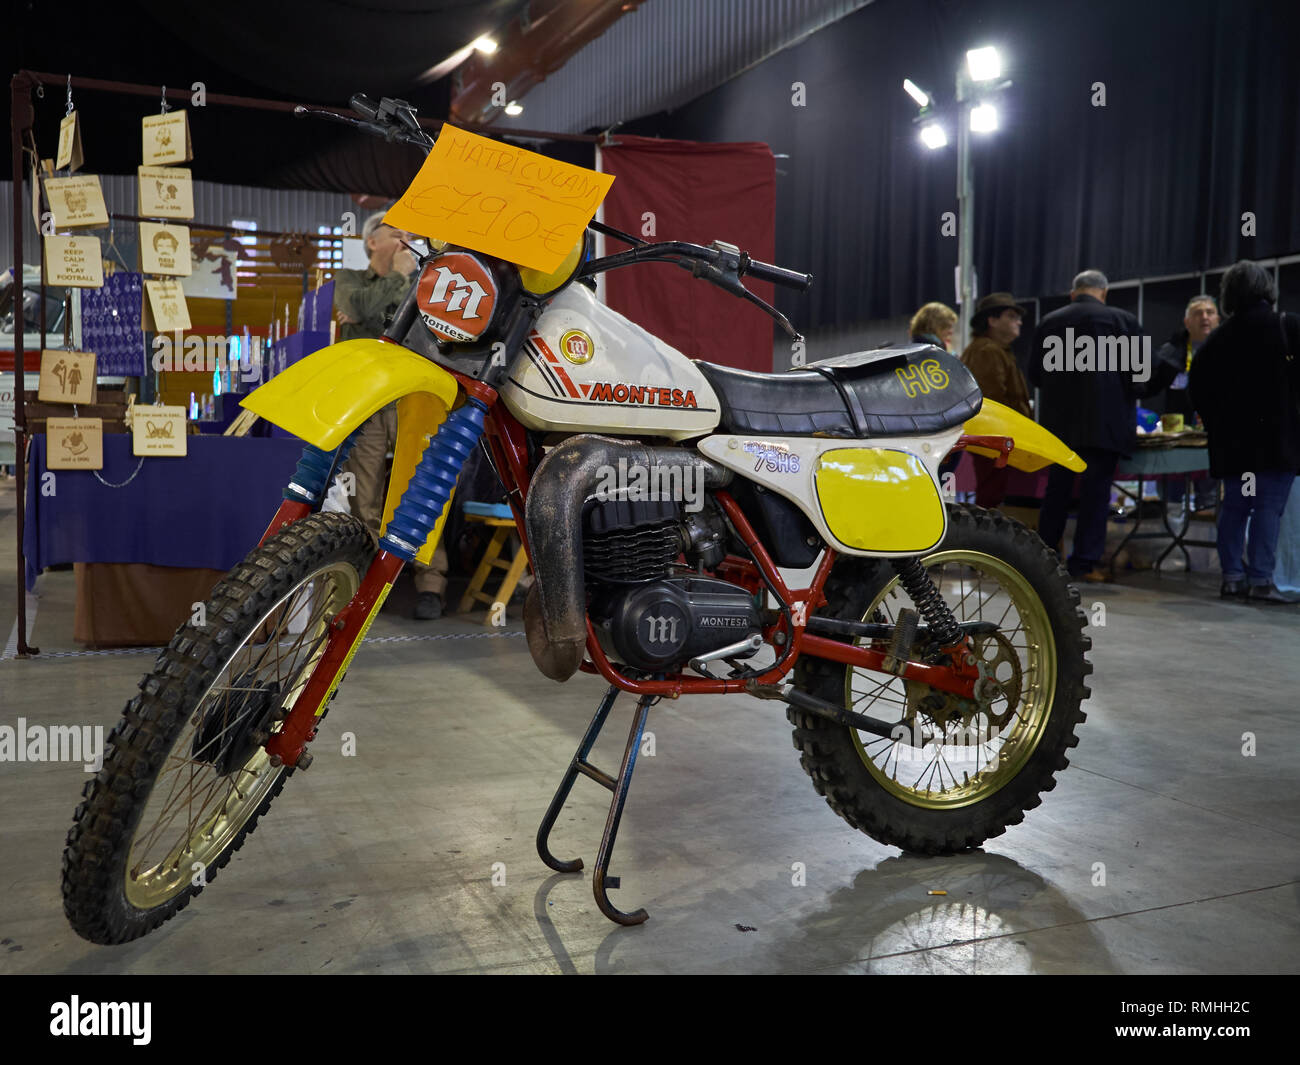 Montesa Enduro 75 H6. Retro Málaga 2019. Spain. Stock Photo